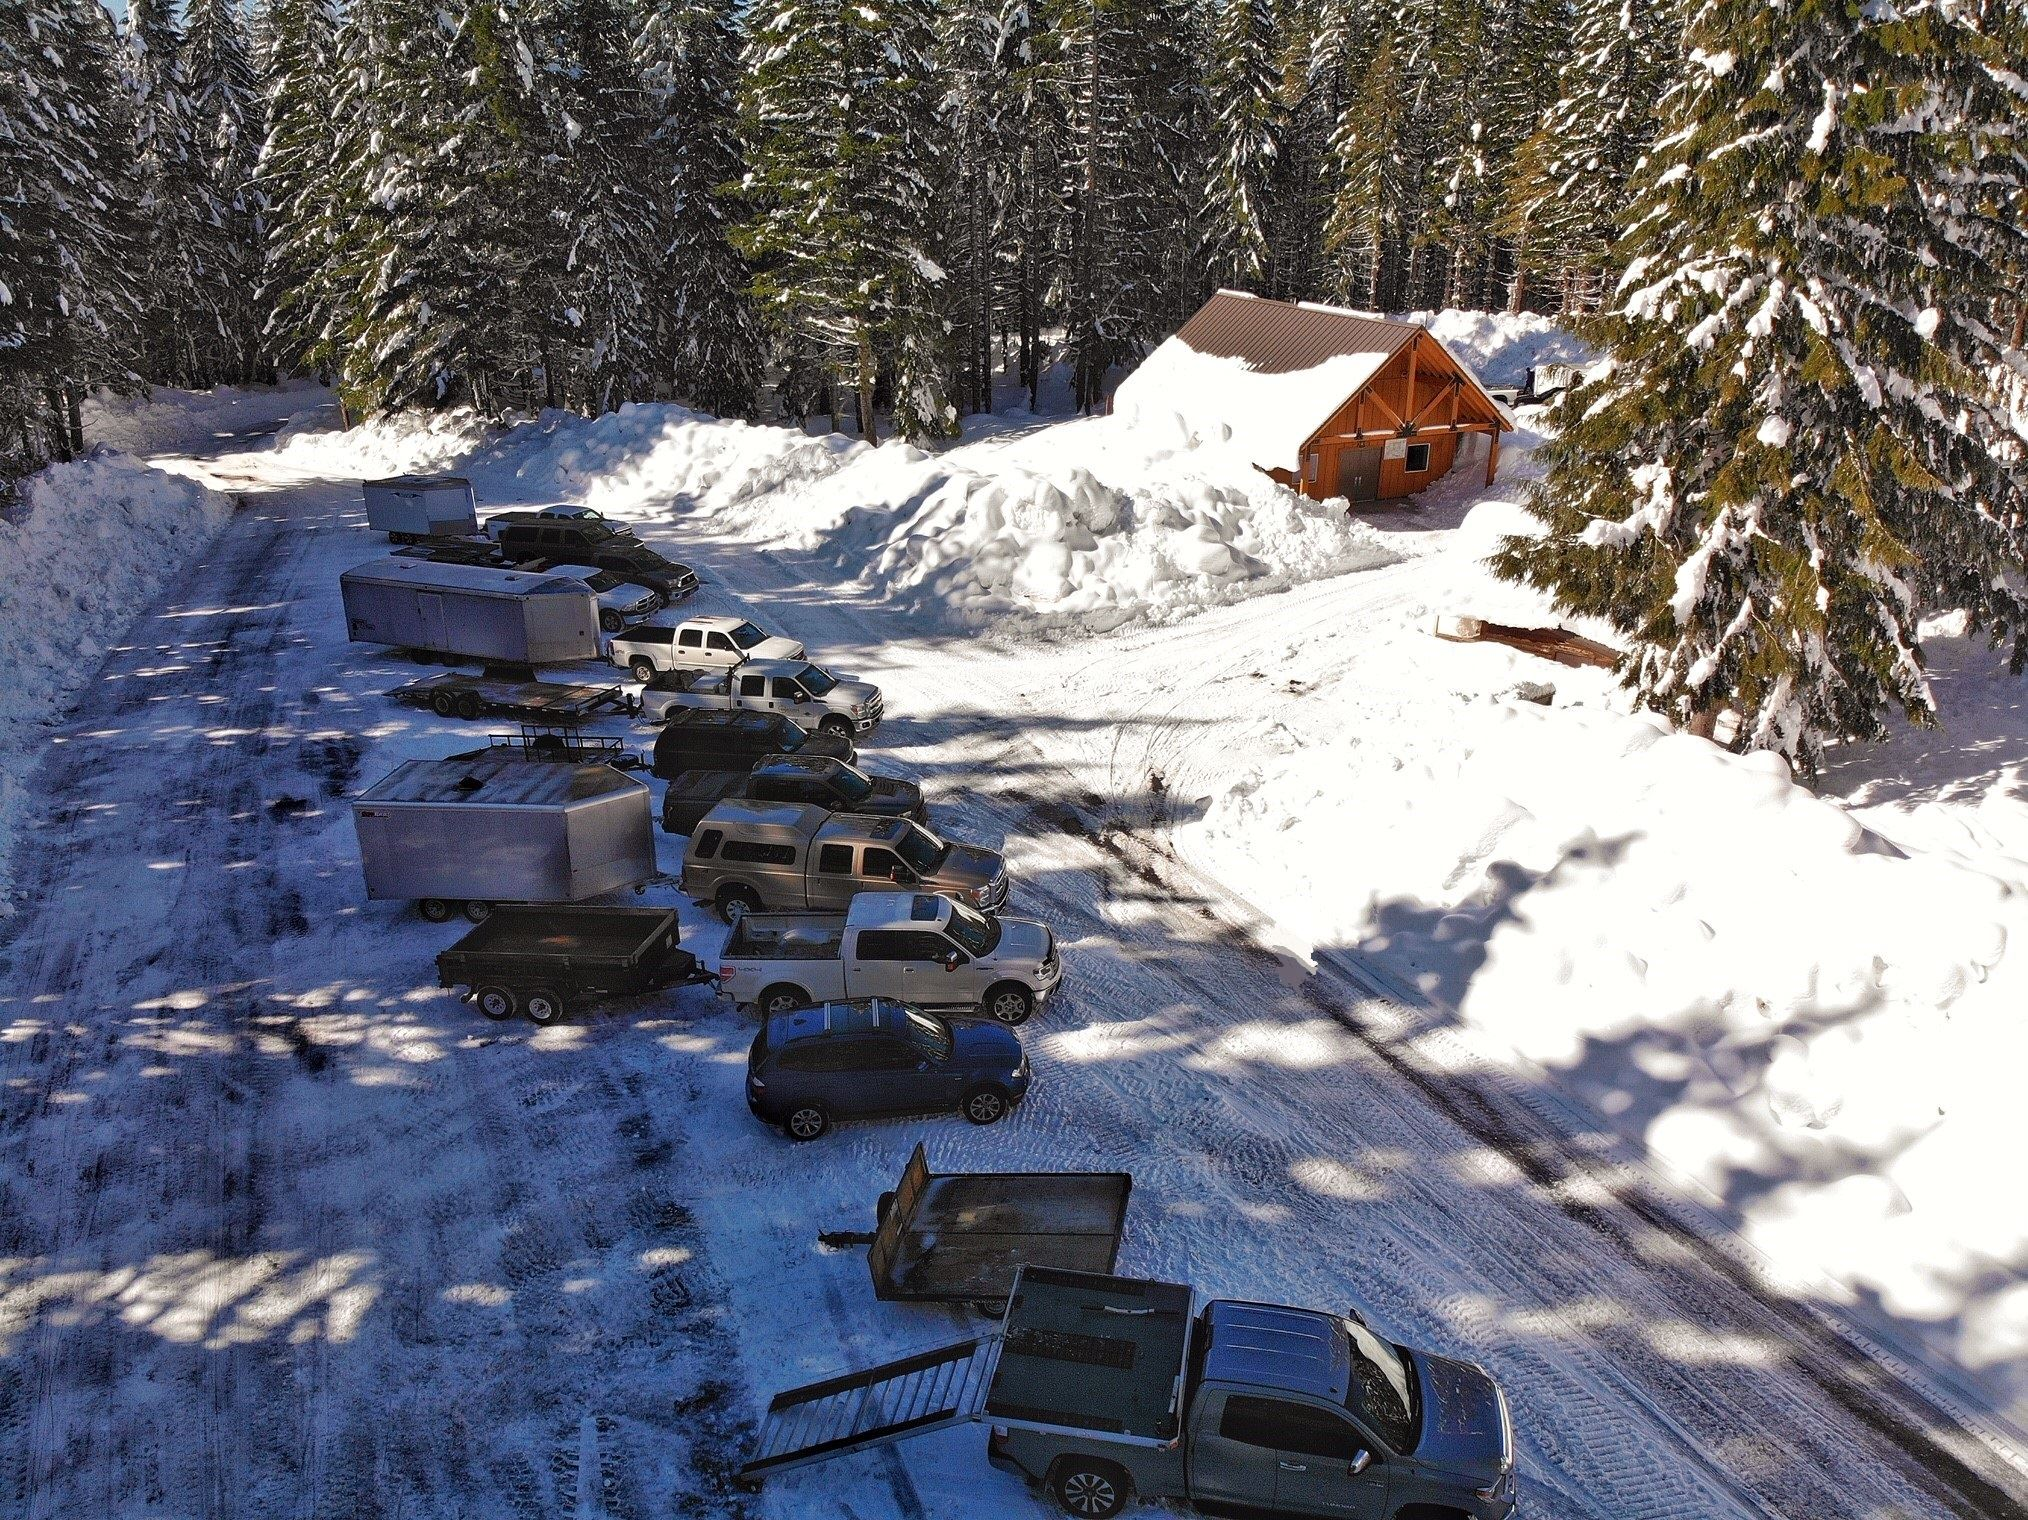 marble mtn shelter parking Opens in new window